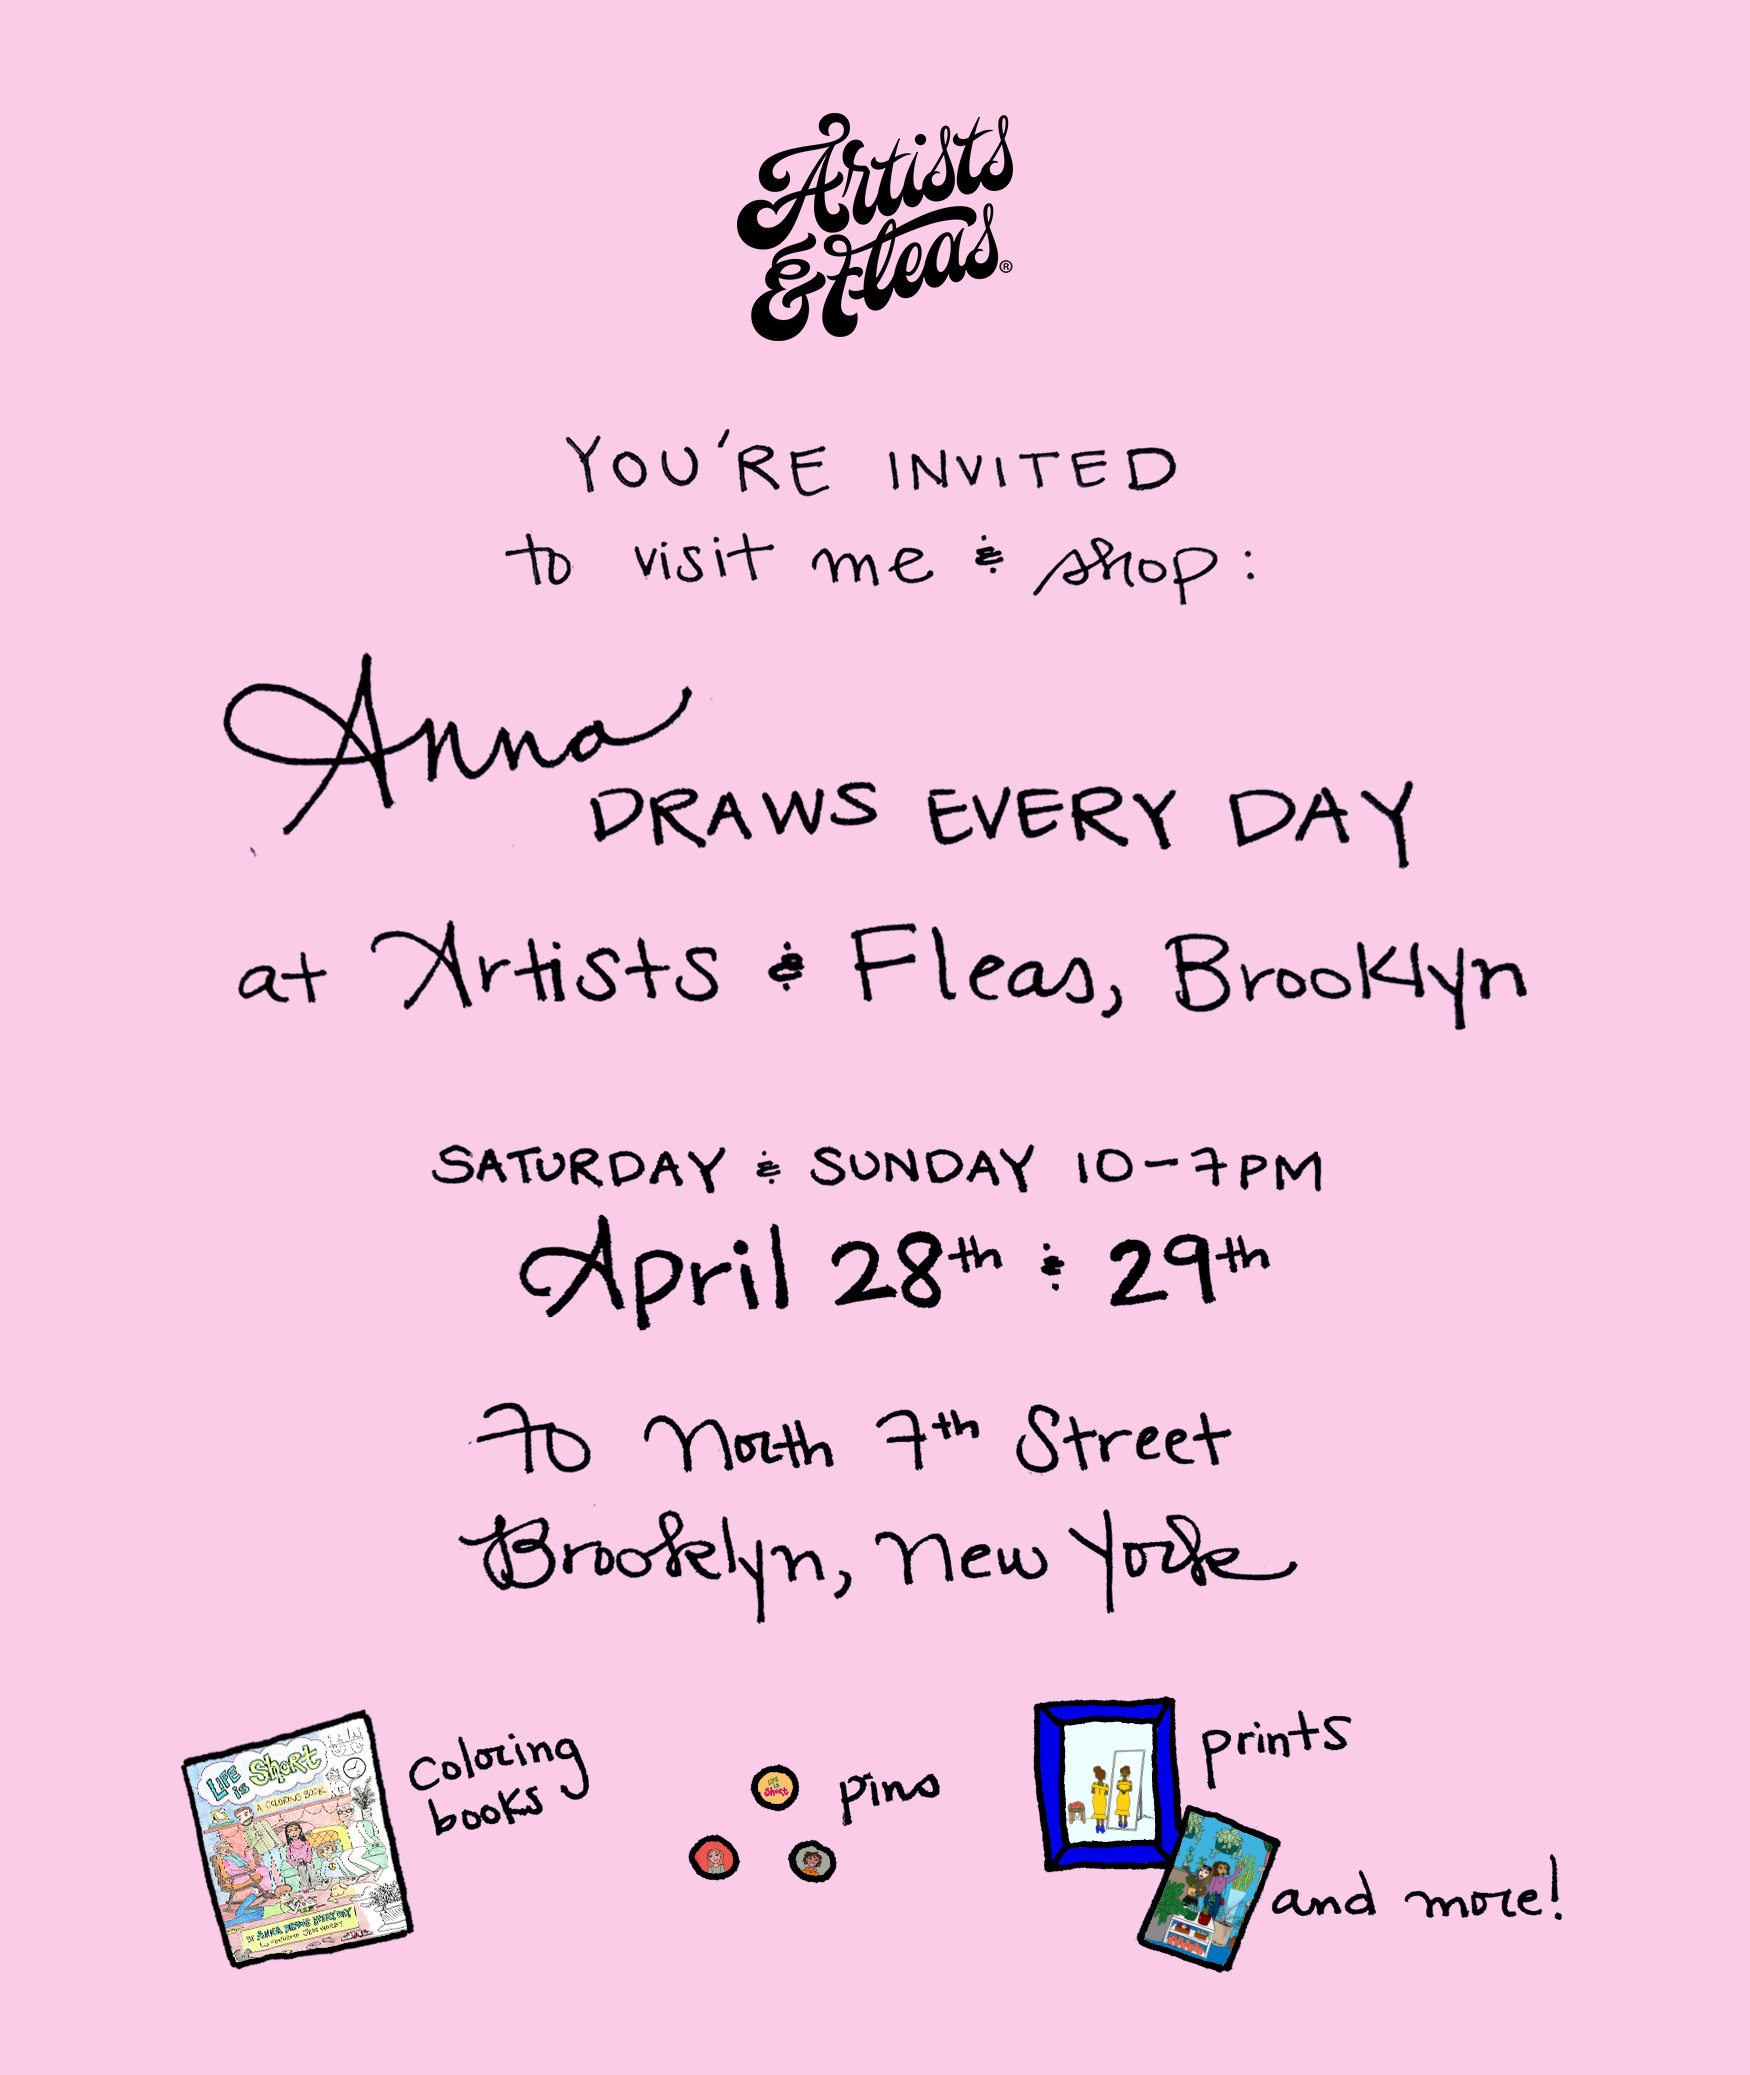 Come visit my booth at Artists & Fleas later this month!